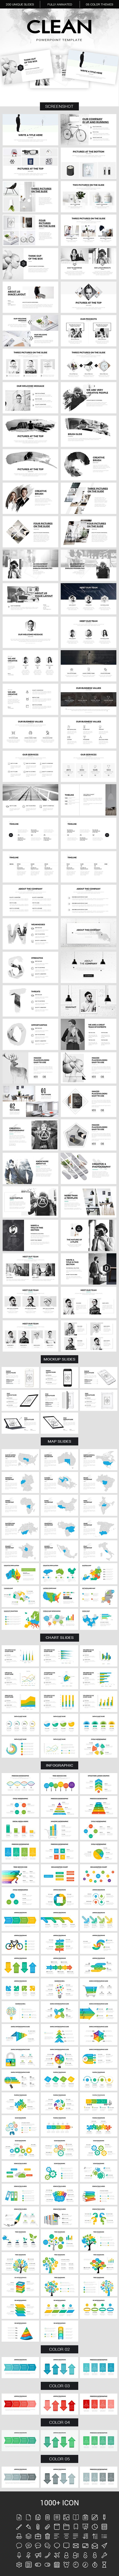 Clean Powerpoint Template - Creative PowerPoint Templates